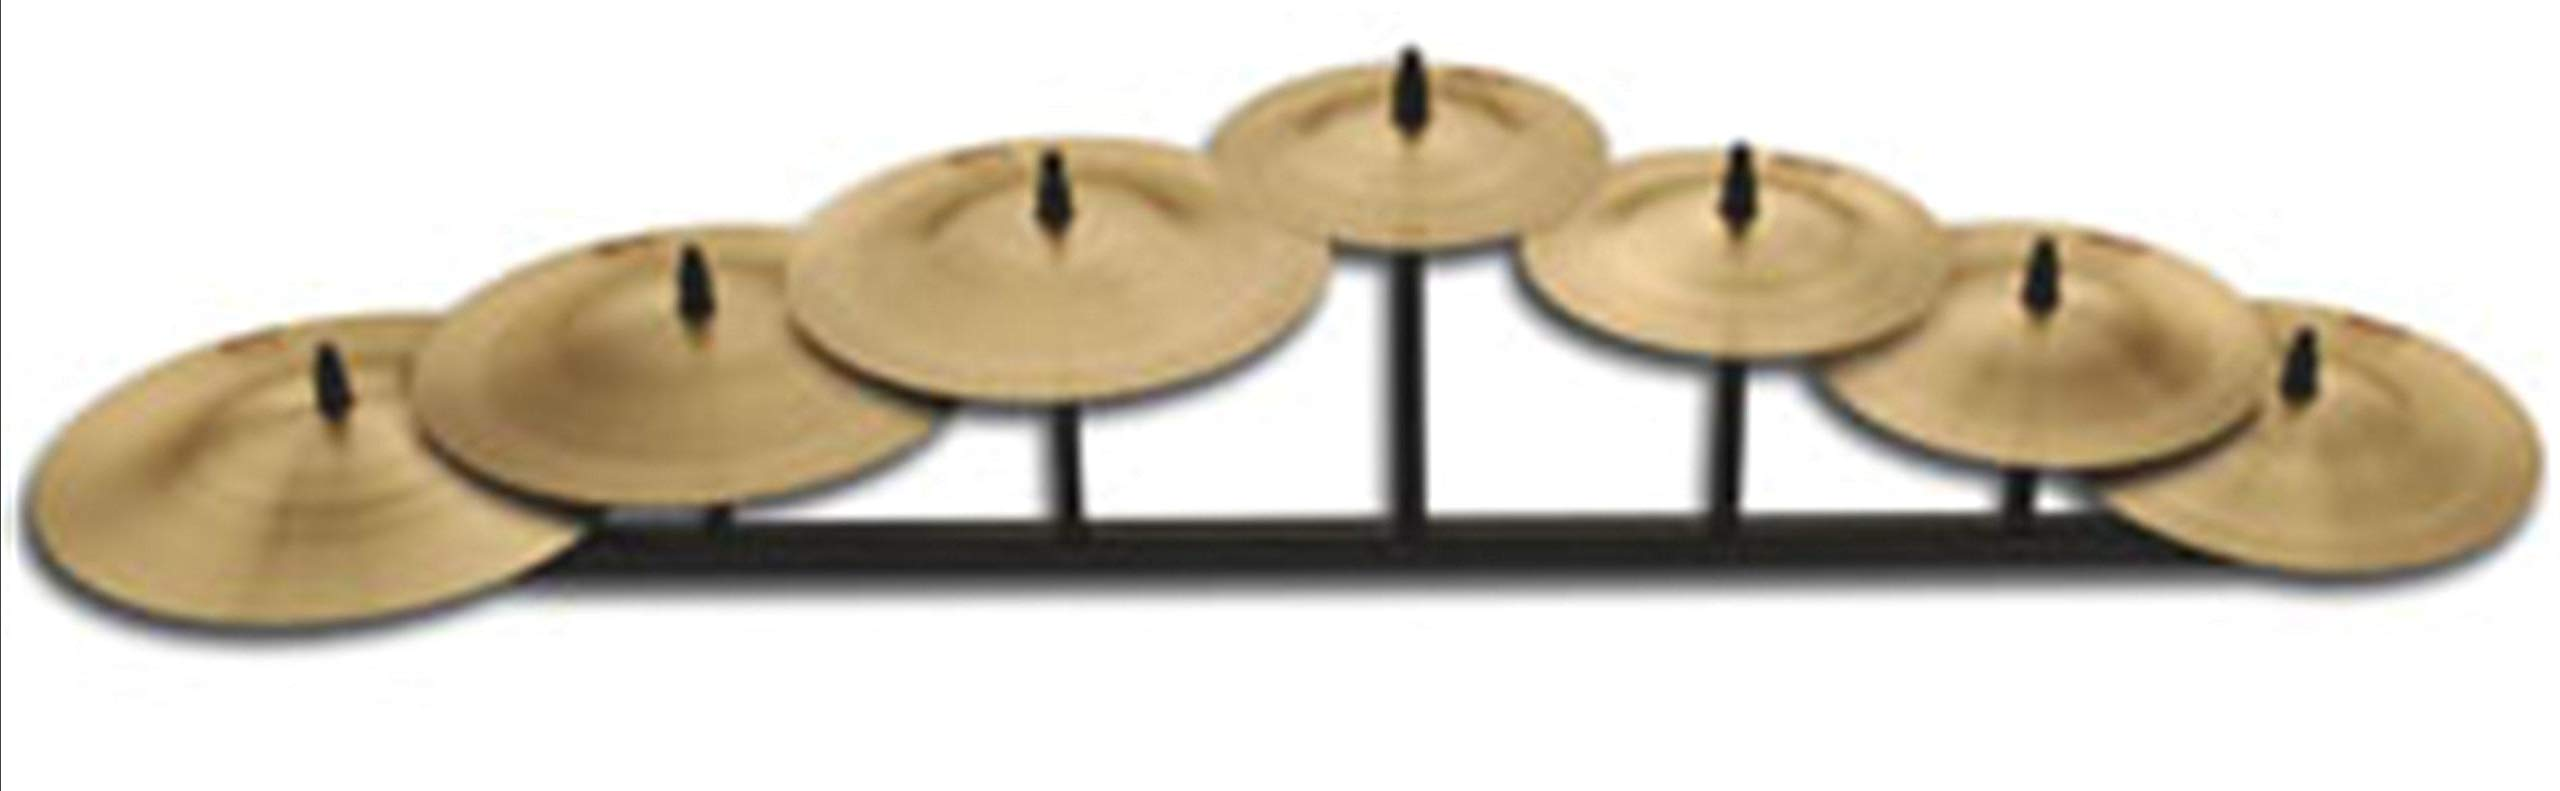 7 Arm Cup Chime Holder Special Sounds Percussion Accessory New by Aromzen